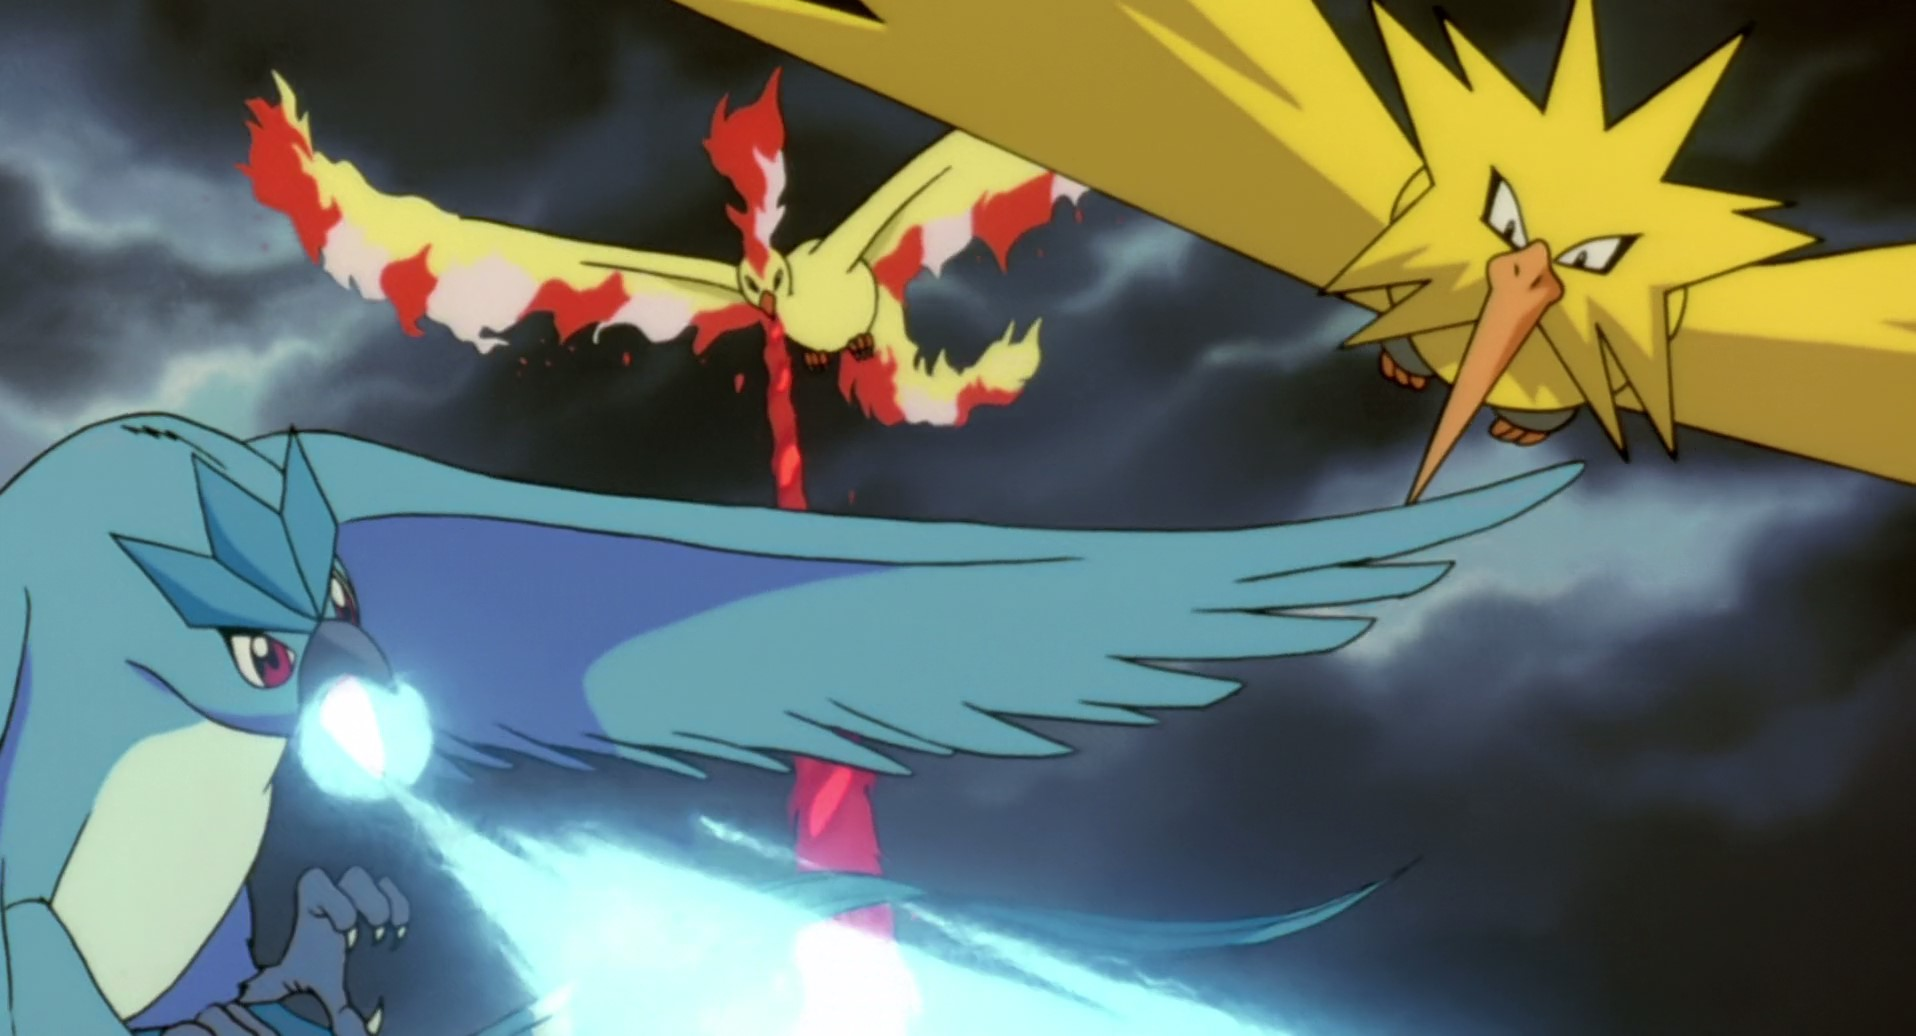 Fig. 4 - Elemental Pokémon Articuno, Moltres and Zapdos in Pokémon: The Movie 2000 (Kunihiko Yuyama, 1999).